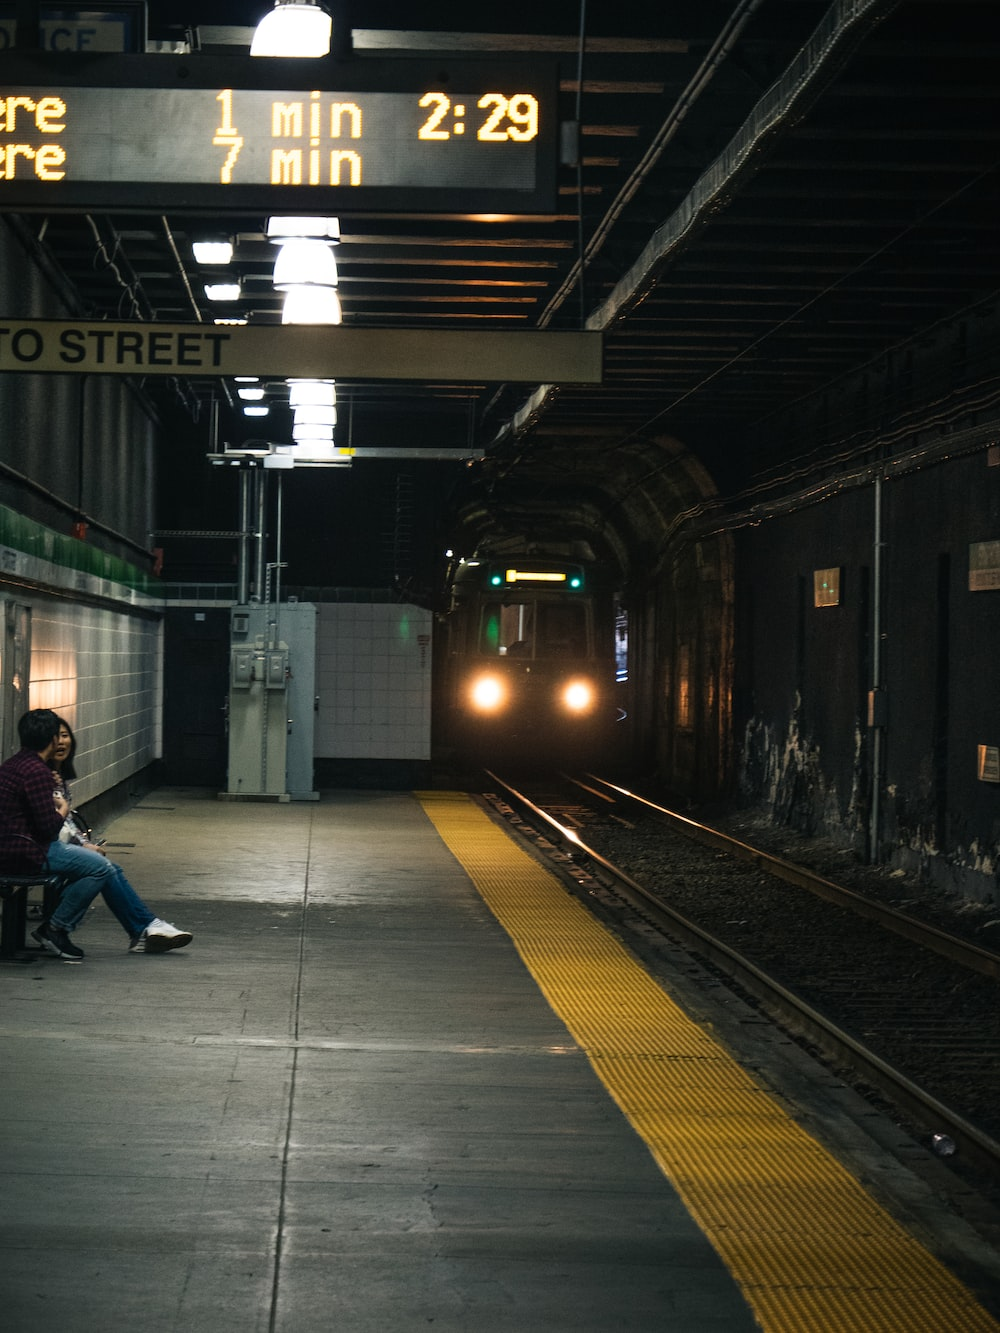 man and woman sits on bench near upcoming train